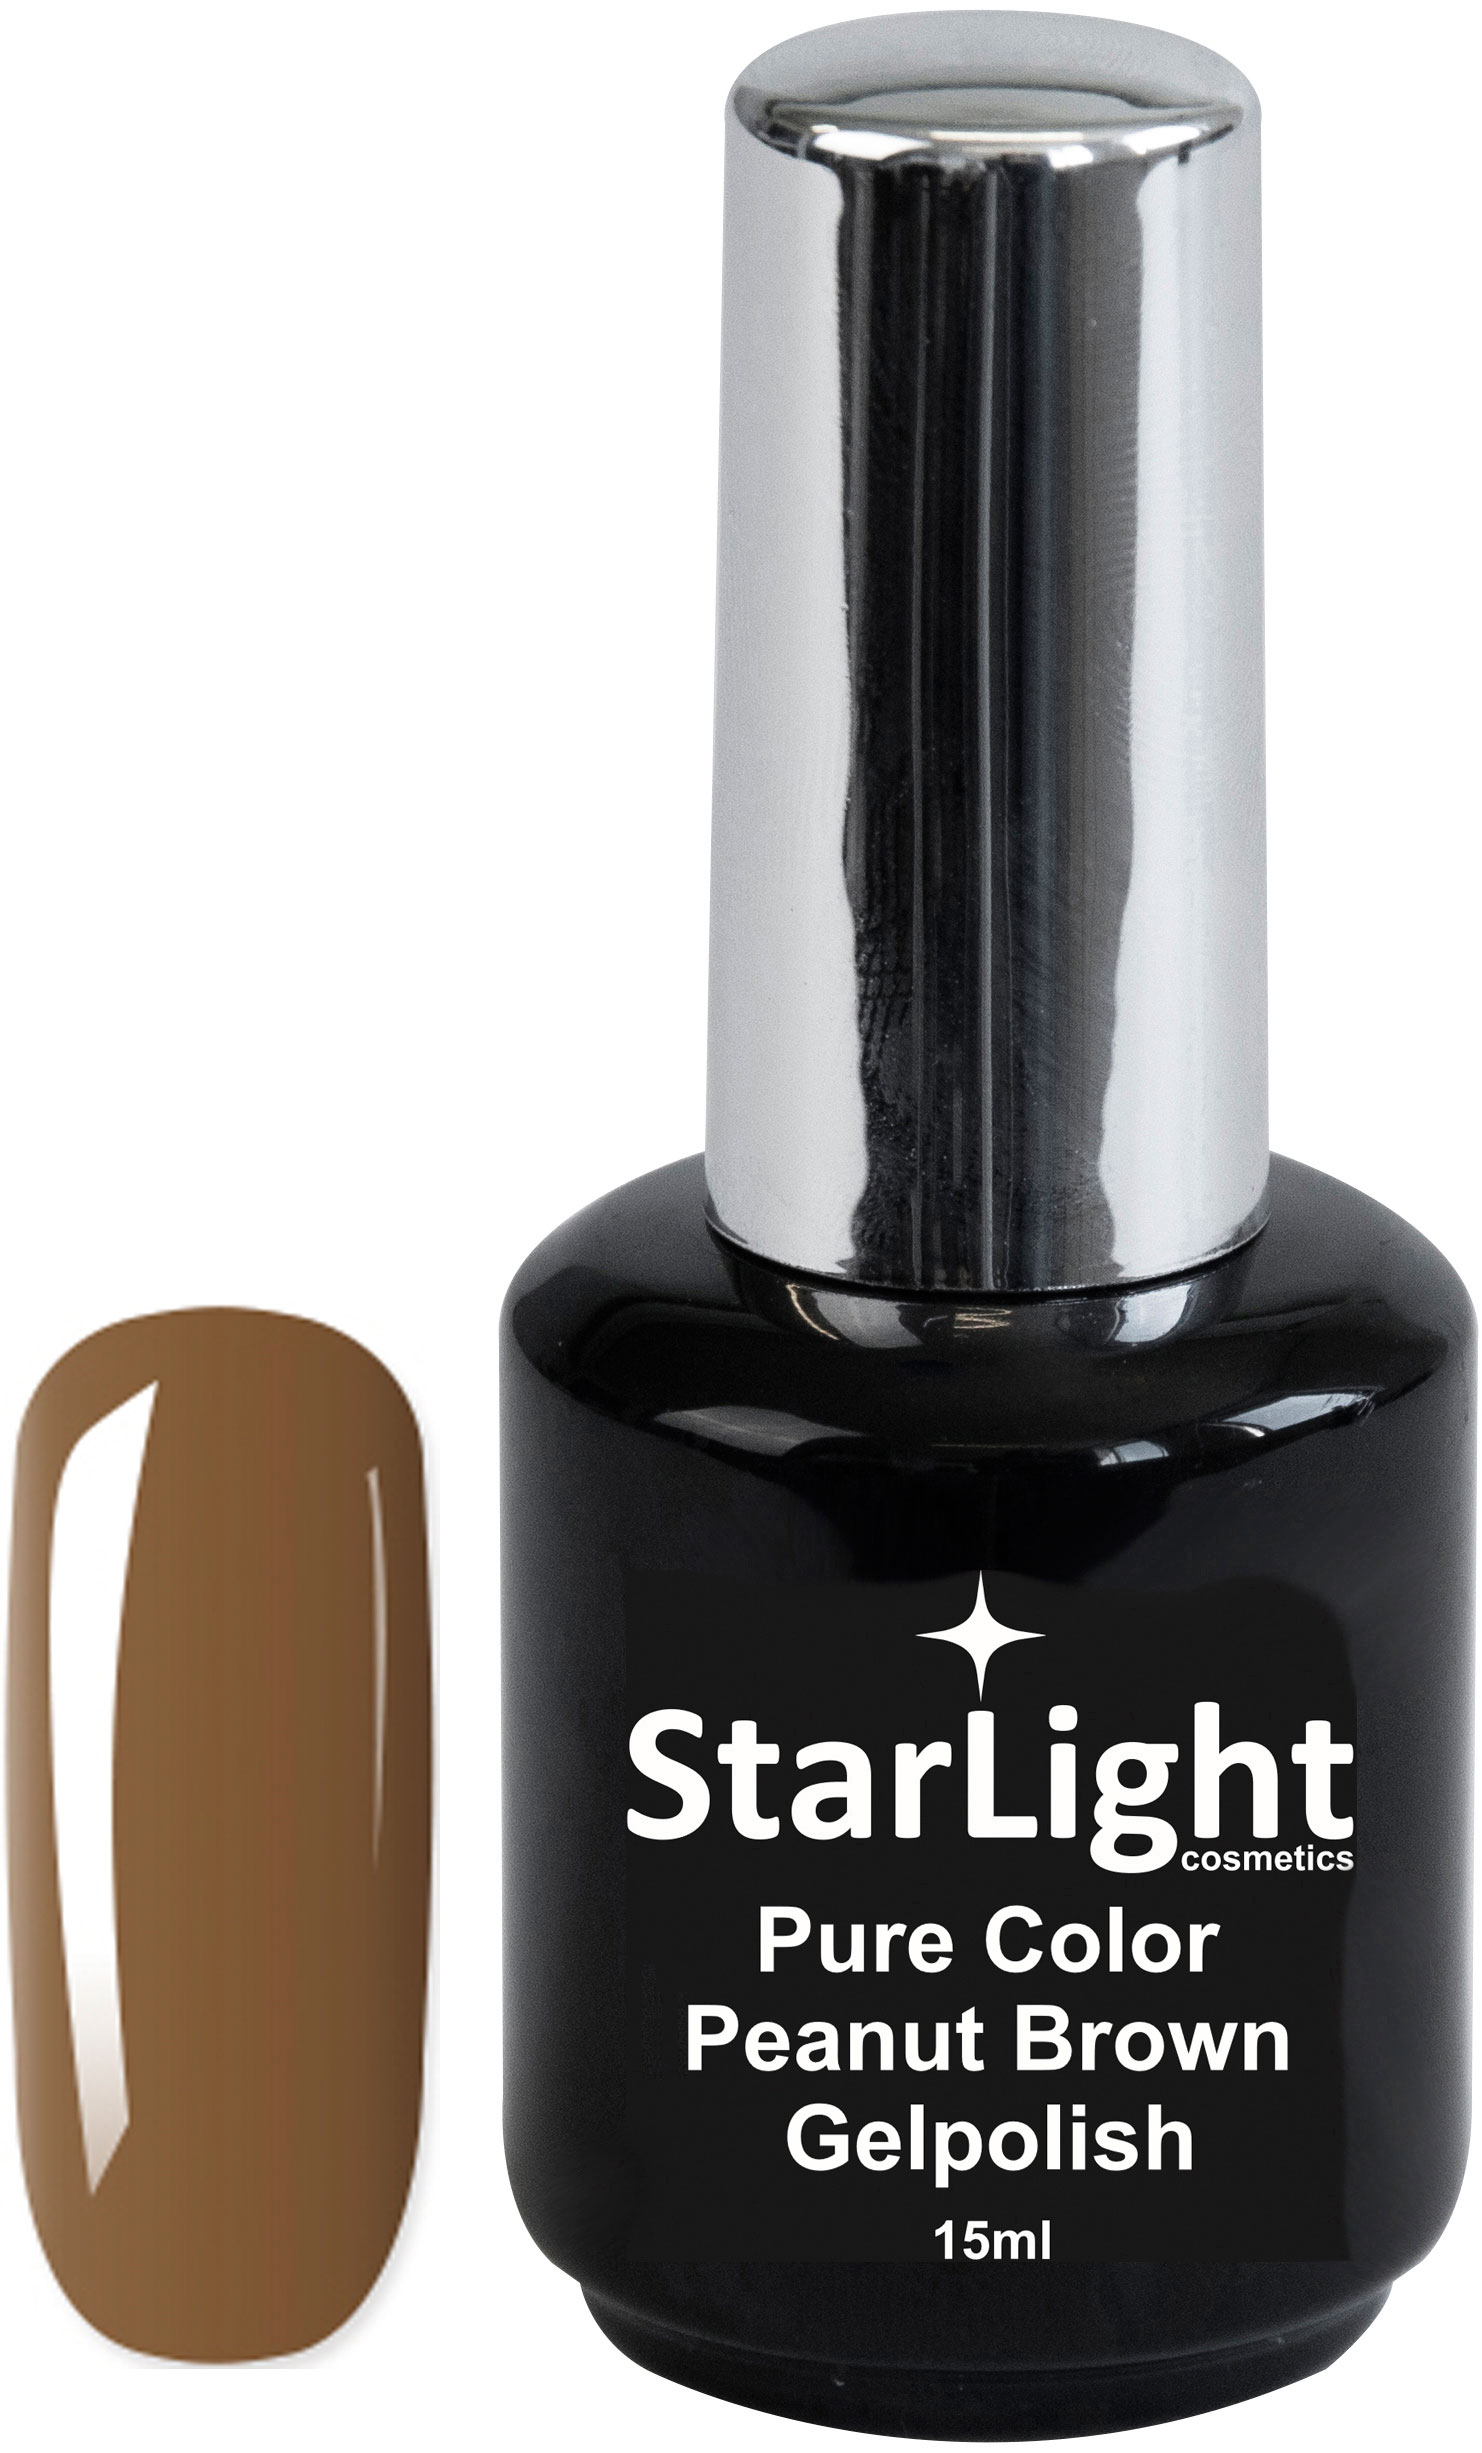 Naglar Gelpolish Pure Color Peanut Brown - 15 ml